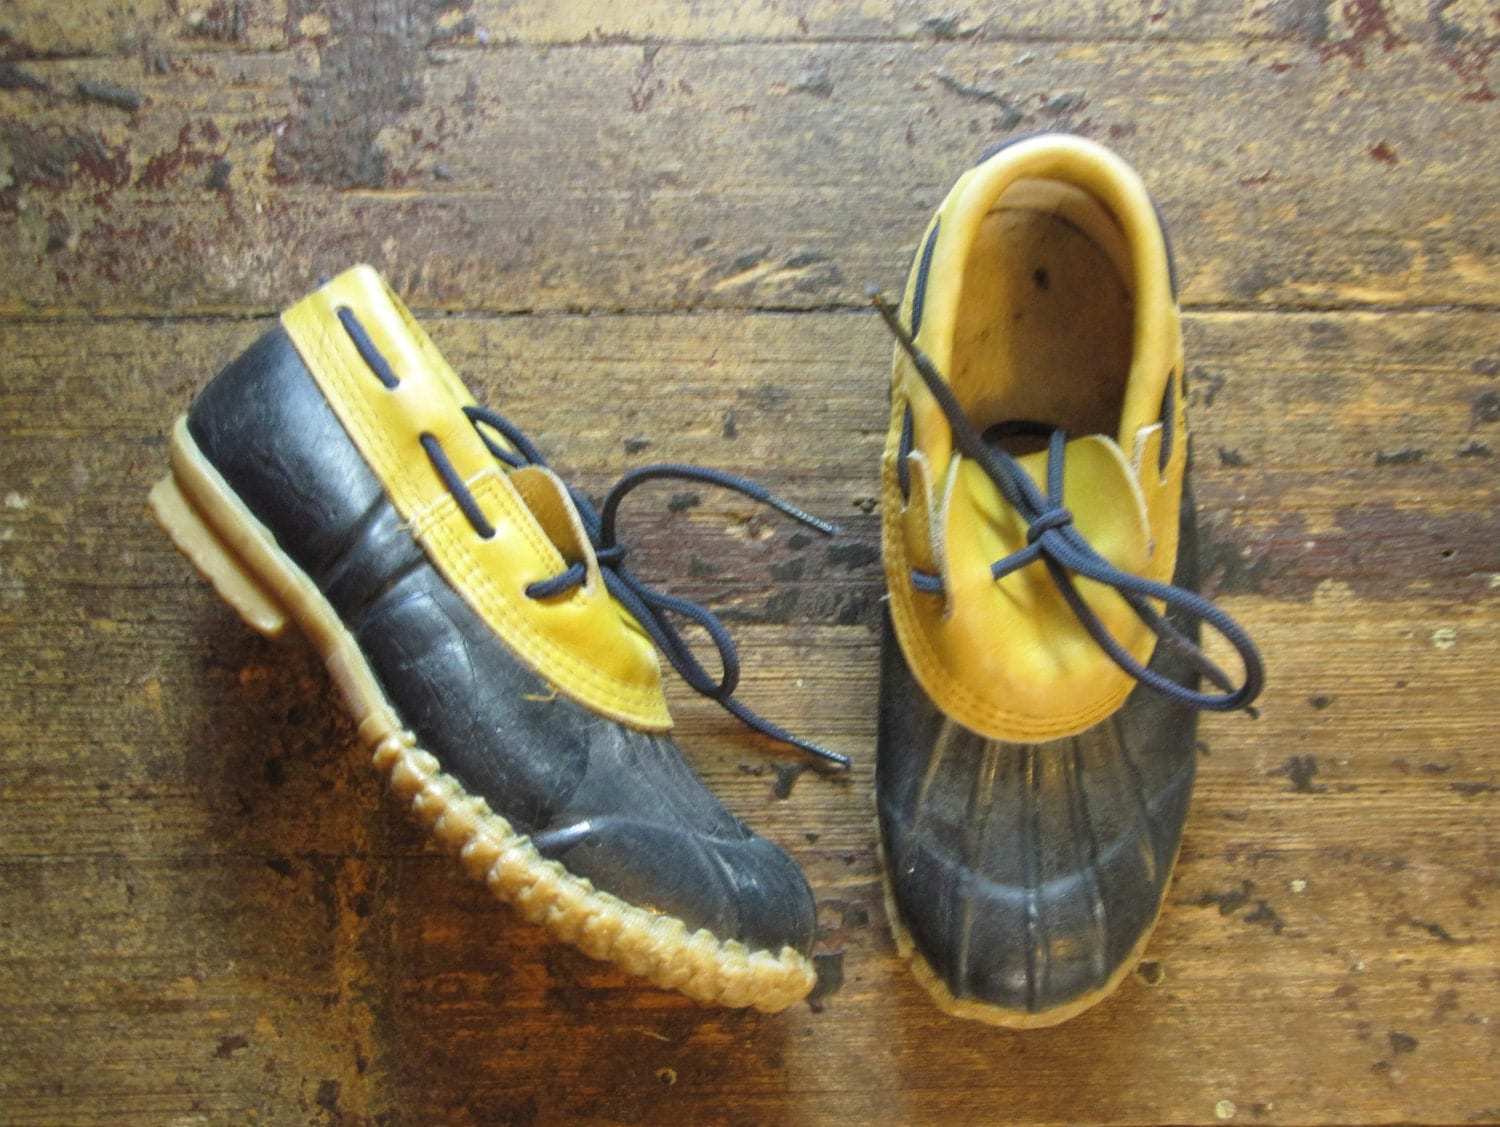 Vintage Duck Shoes, blue and yellow, 1980s duck shoes rain shoes navy and yellow - MardyStark